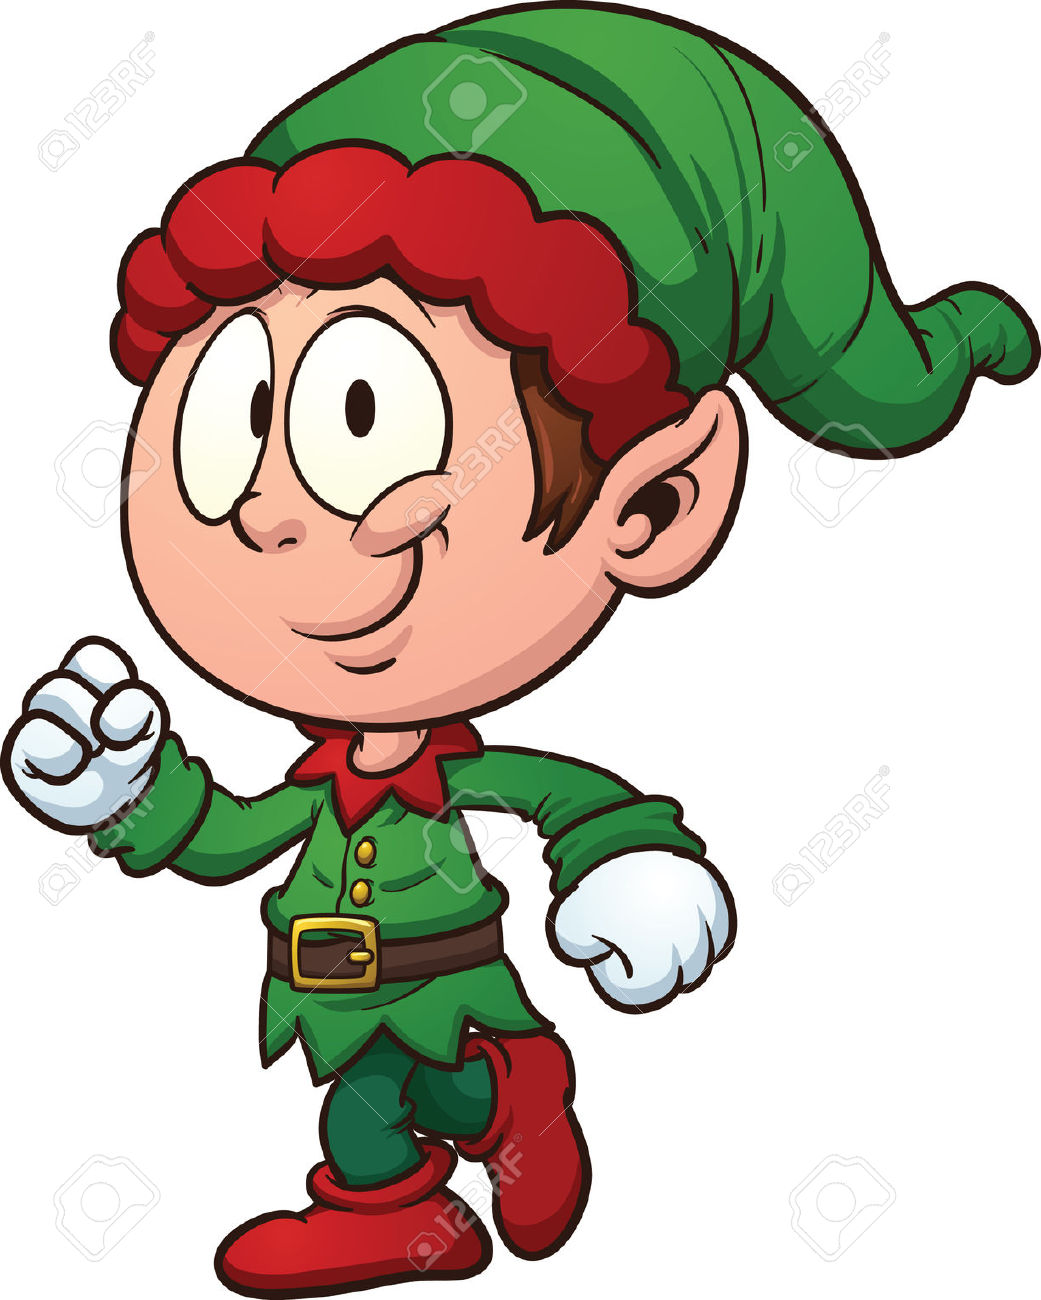 elf movie clipart at getdrawings com free for personal use elf rh getdrawings com clip art elves clip art elves ears